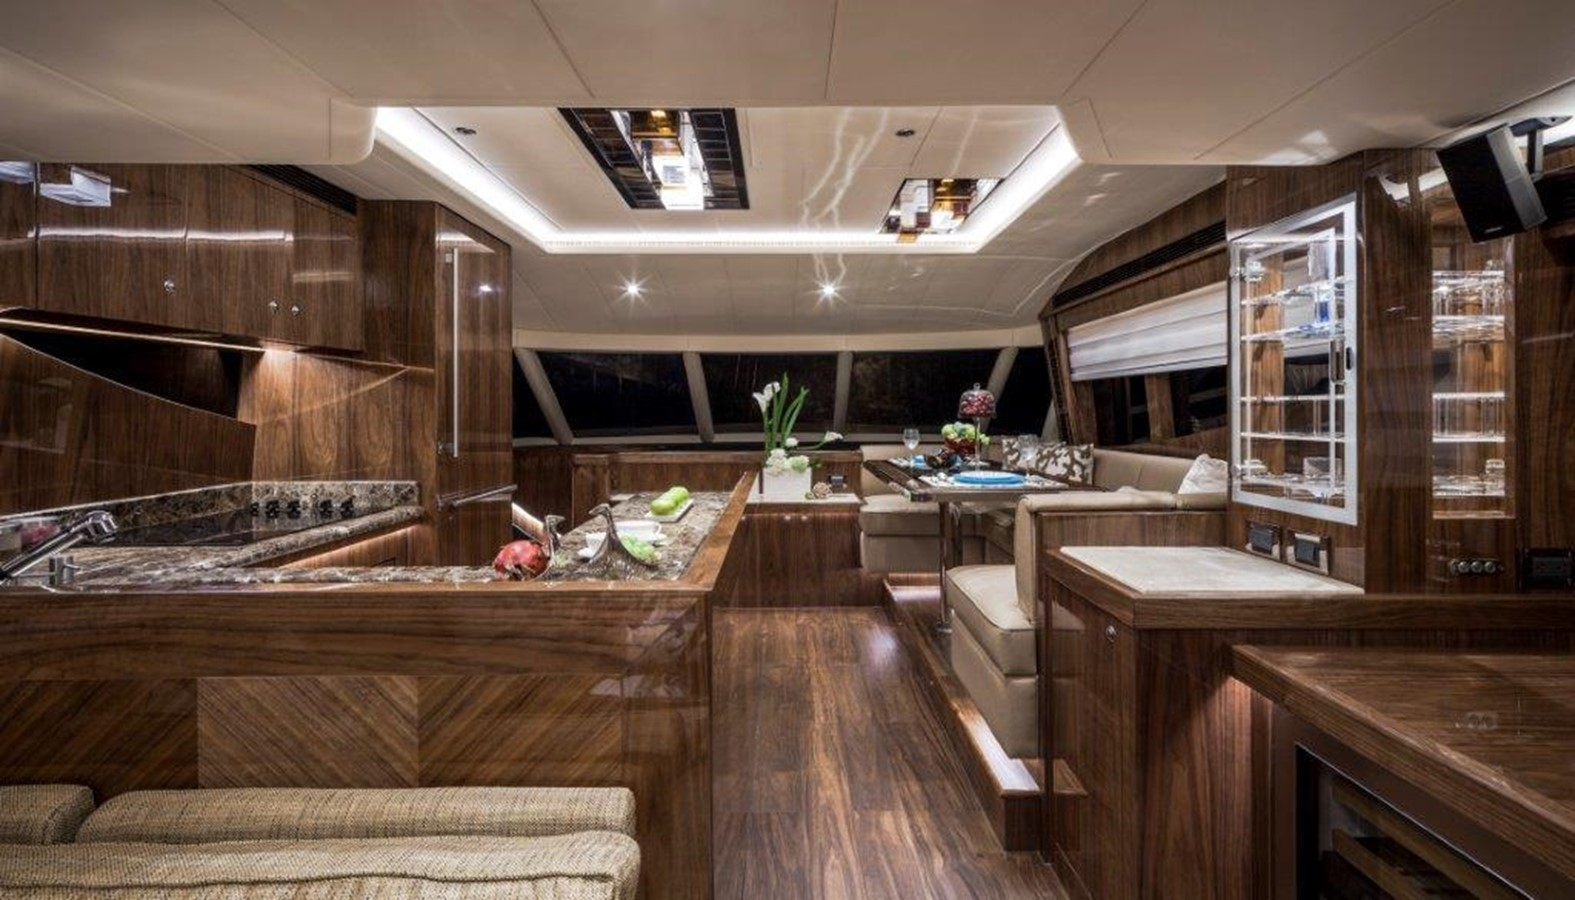 Galley - Dinette 2021 HORIZON E62 Motor Yacht 2205324